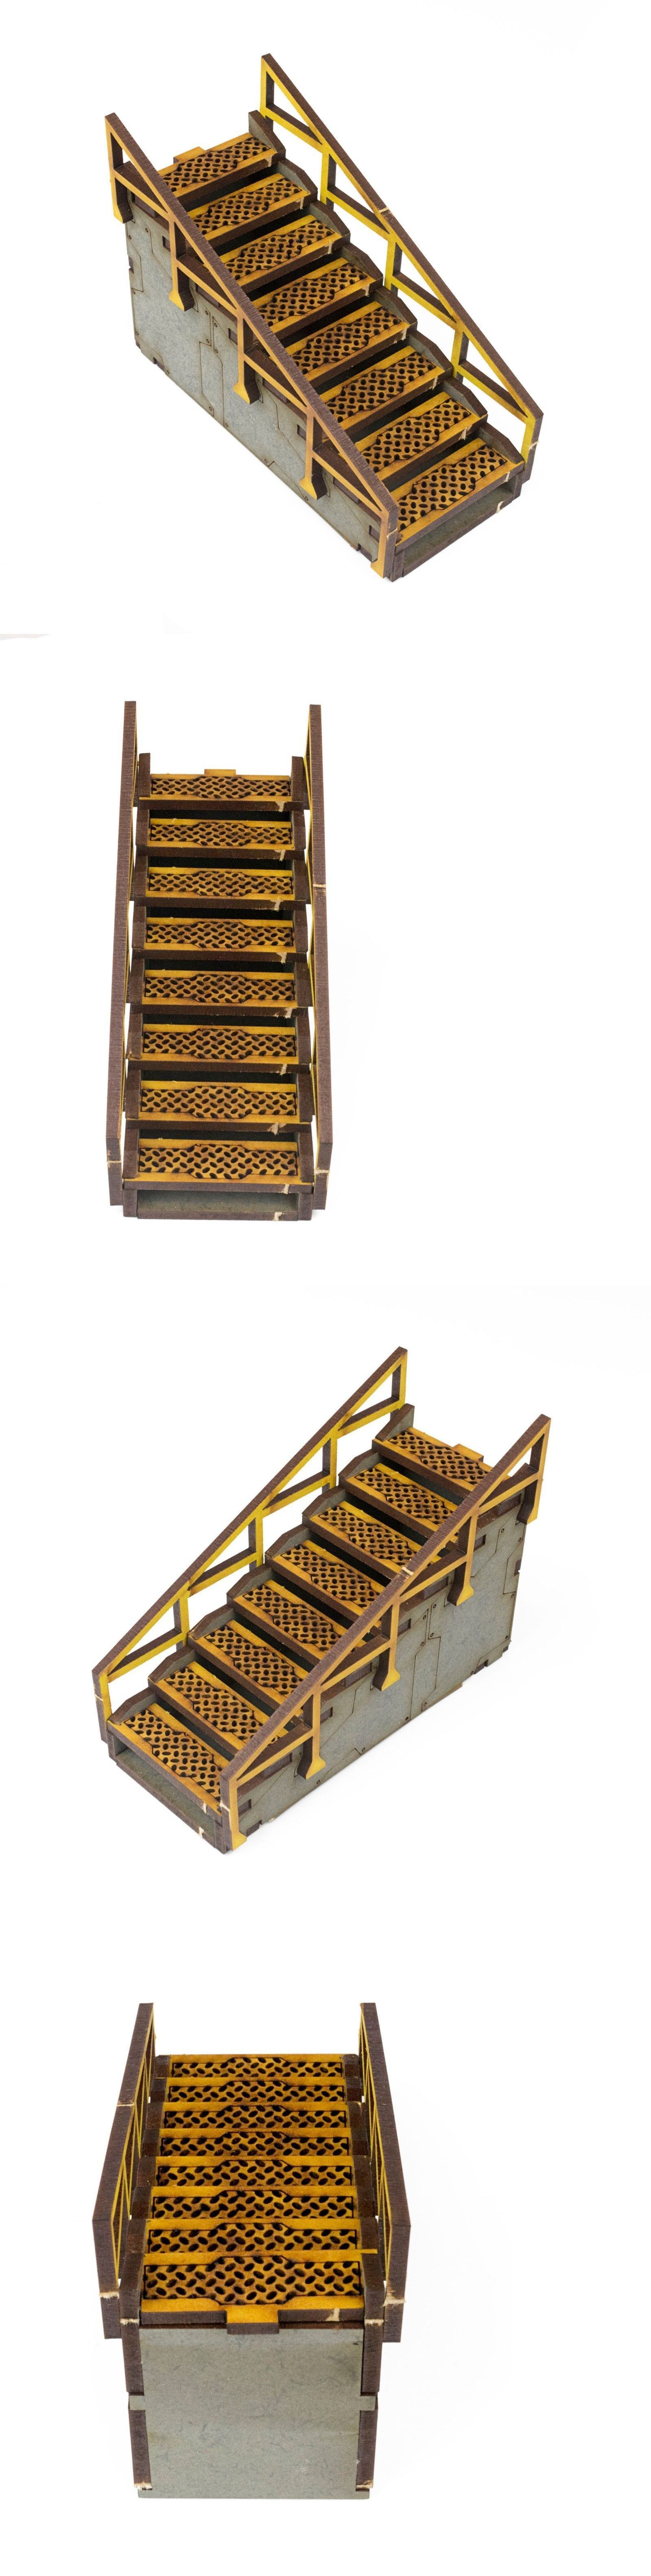 Scenery and Trees 180332: Wwg Industry Of War Pre-Painted Stairway – 28Mm Sci-Fi Wargaming Terrain Model -> BUY IT NOW ONLY: $17.99 on #eBay #scenery #trees #industry #stairway #wargaming #terrain #model #wargamingterrain Scenery and Trees 180332: Wwg Industry Of War Pre-Painted Stairway – 28Mm Sci-Fi Wargaming Terrain Model -> BUY IT NOW ONLY: $17.99 on #eBay #scenery #trees #industry #stairway #wargaming #terrain #model #wargamingterrain Scenery and Trees 180332: Wwg Industry Of War Pre-Pa #wargamingterrain